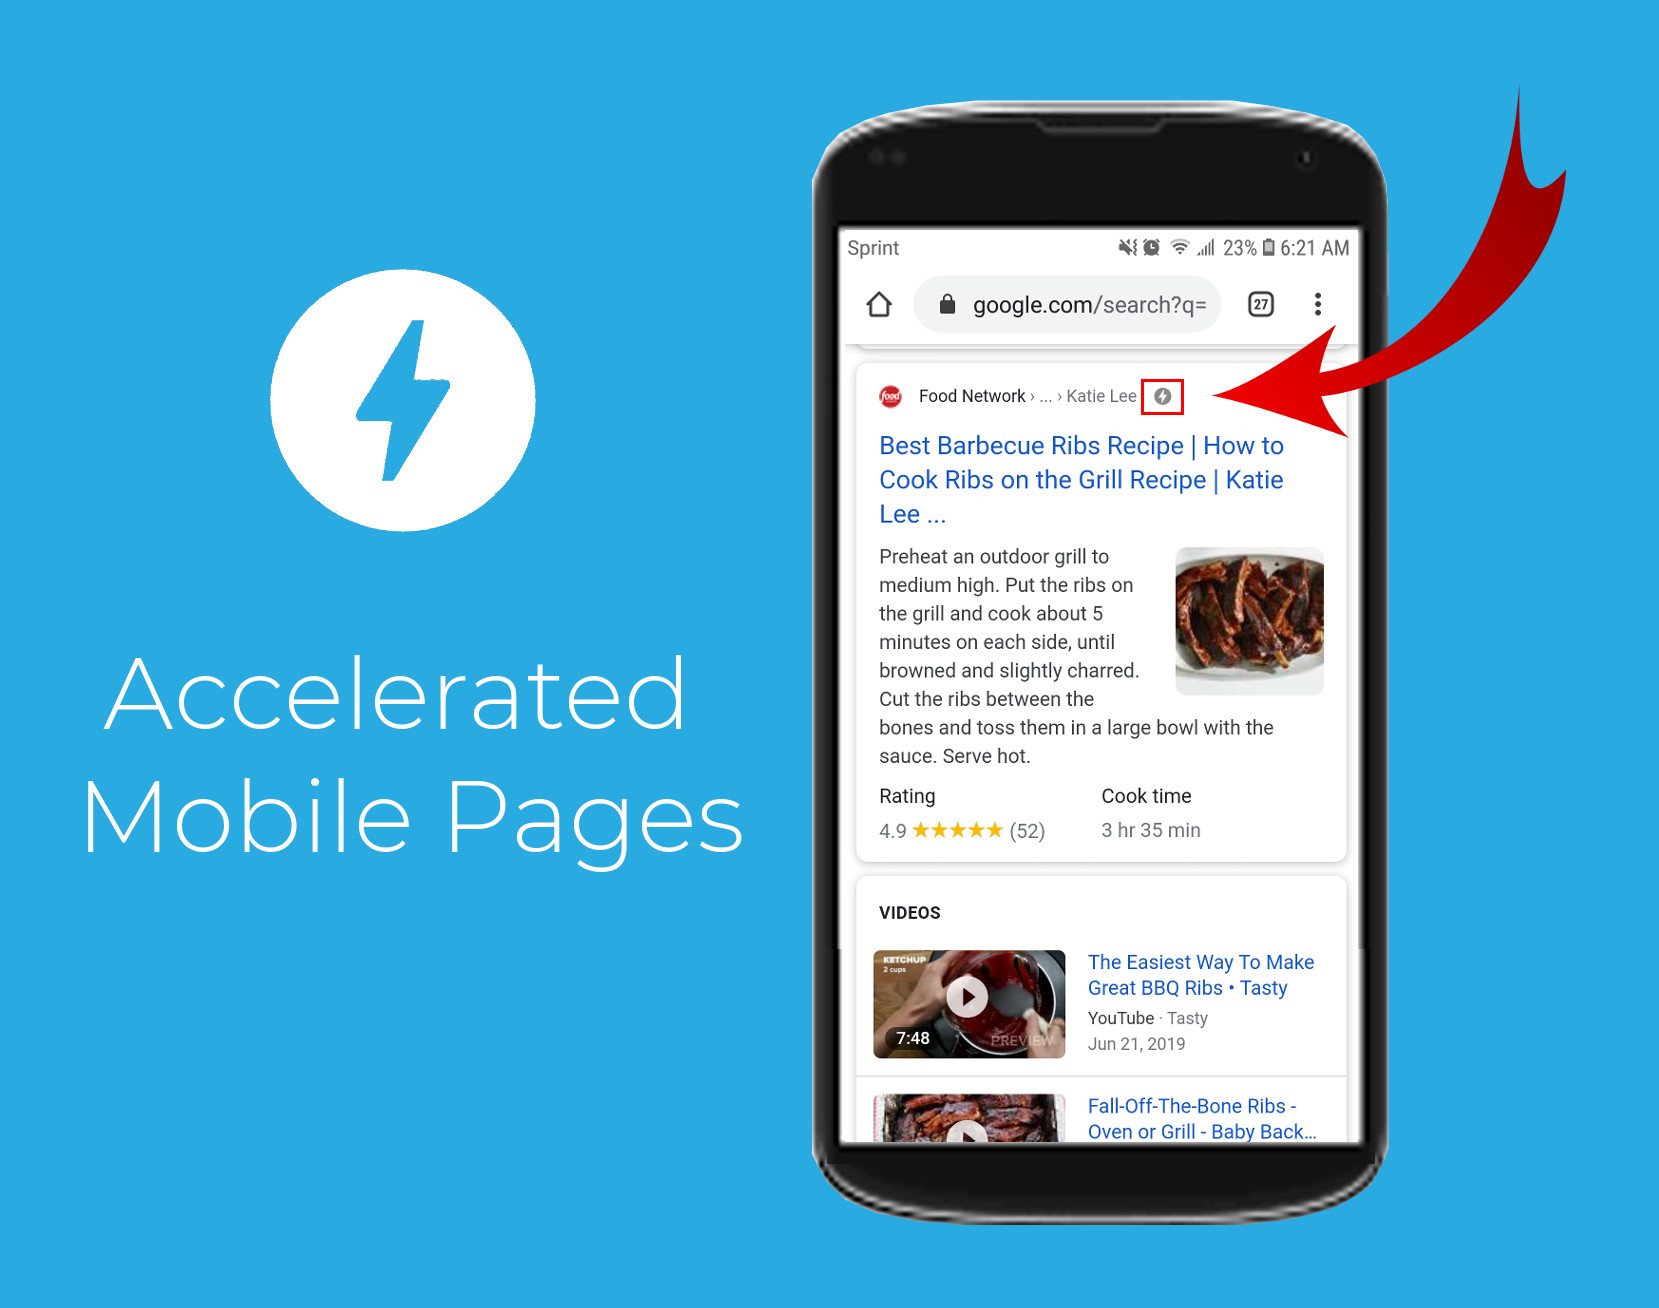 accelerated mobile pages Google results